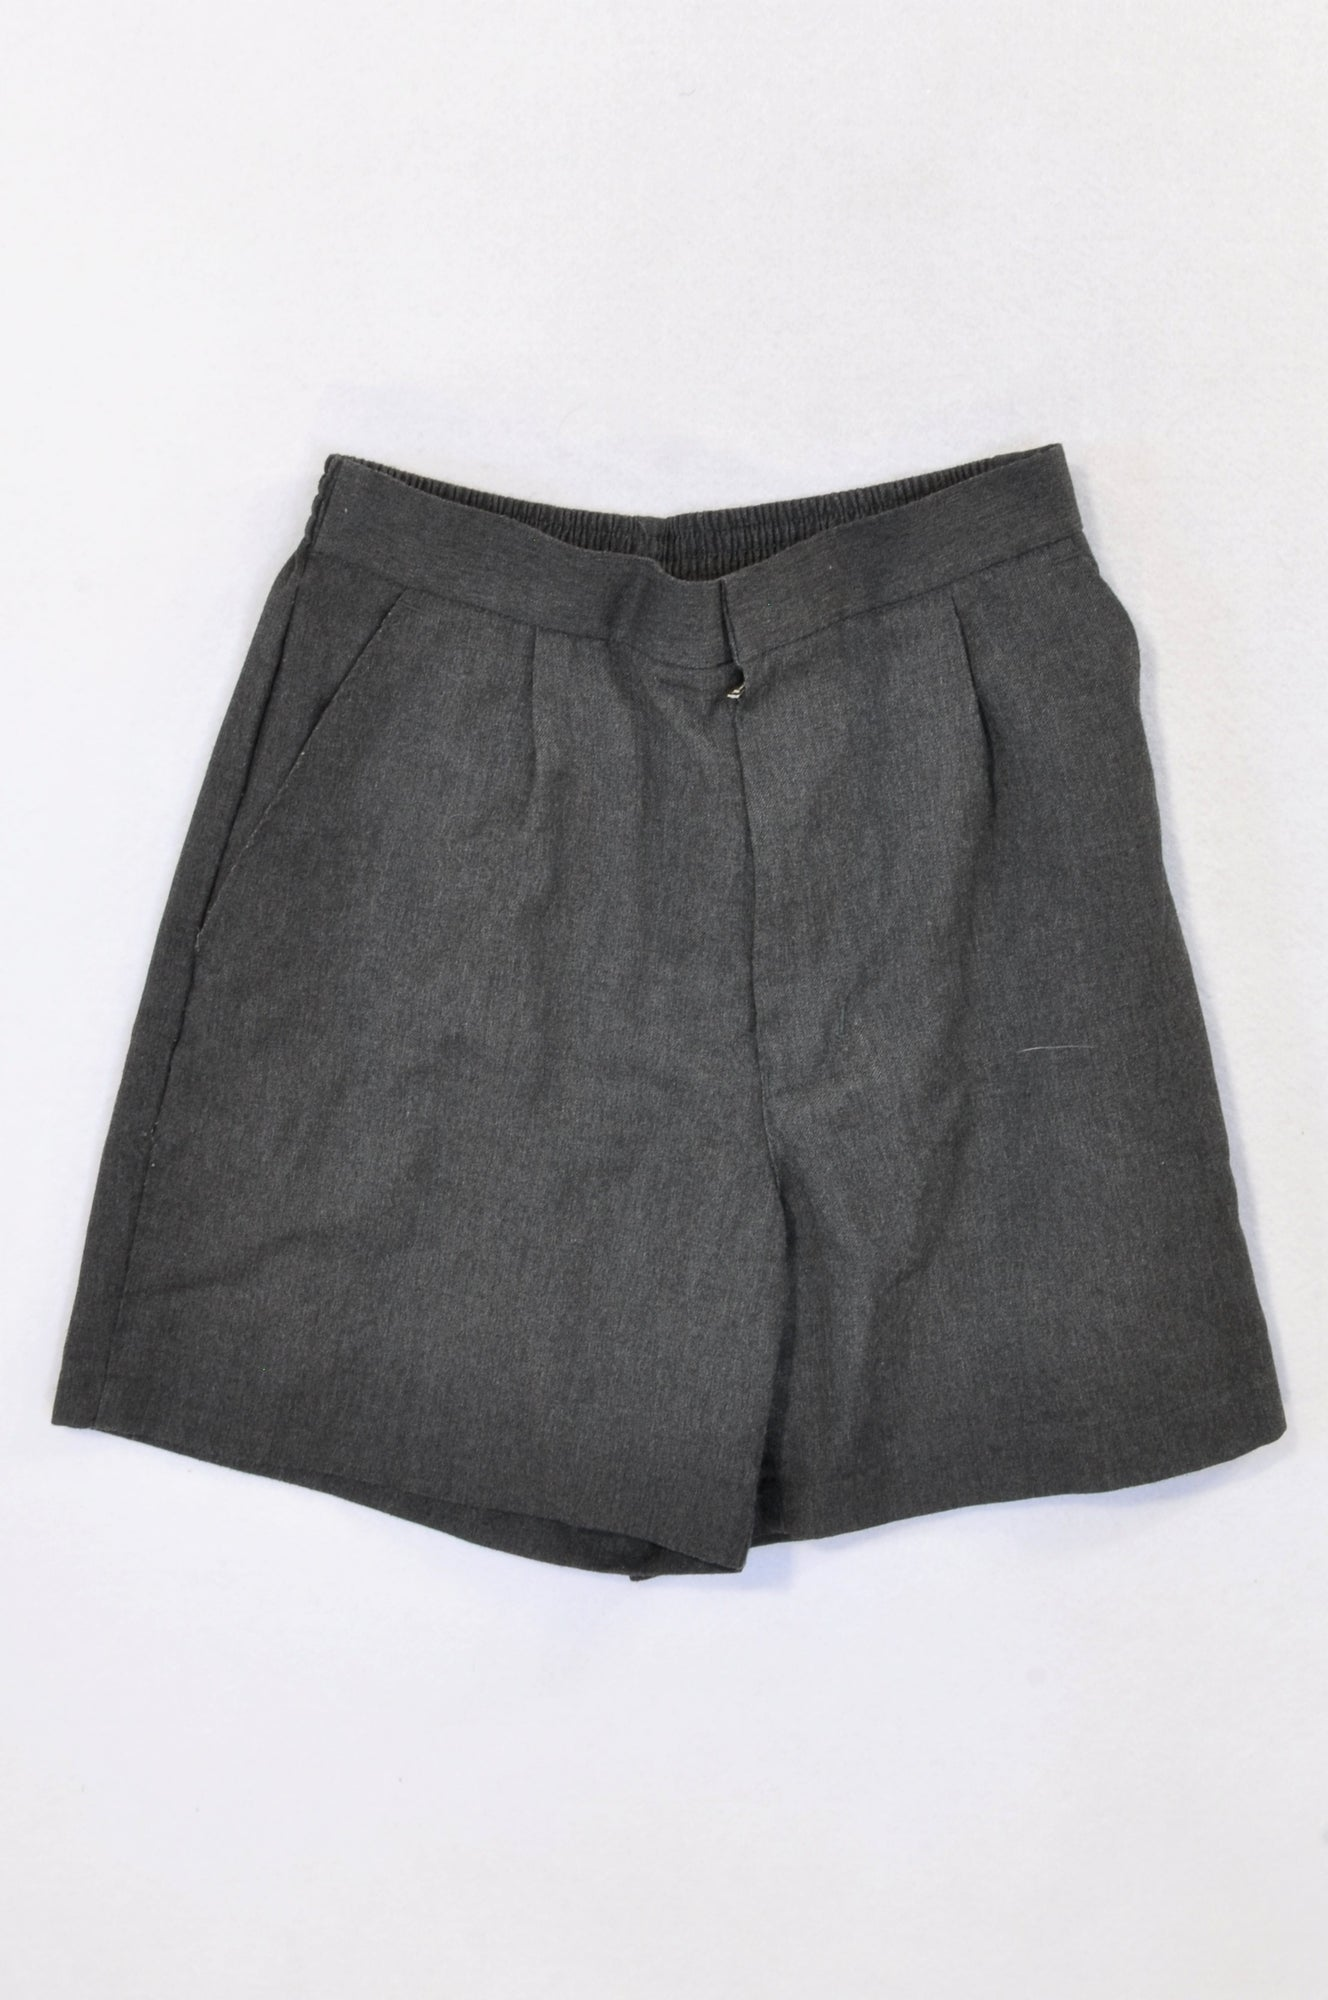 Class Act Basic Dark Grey School Shorts Boys 11-12 years